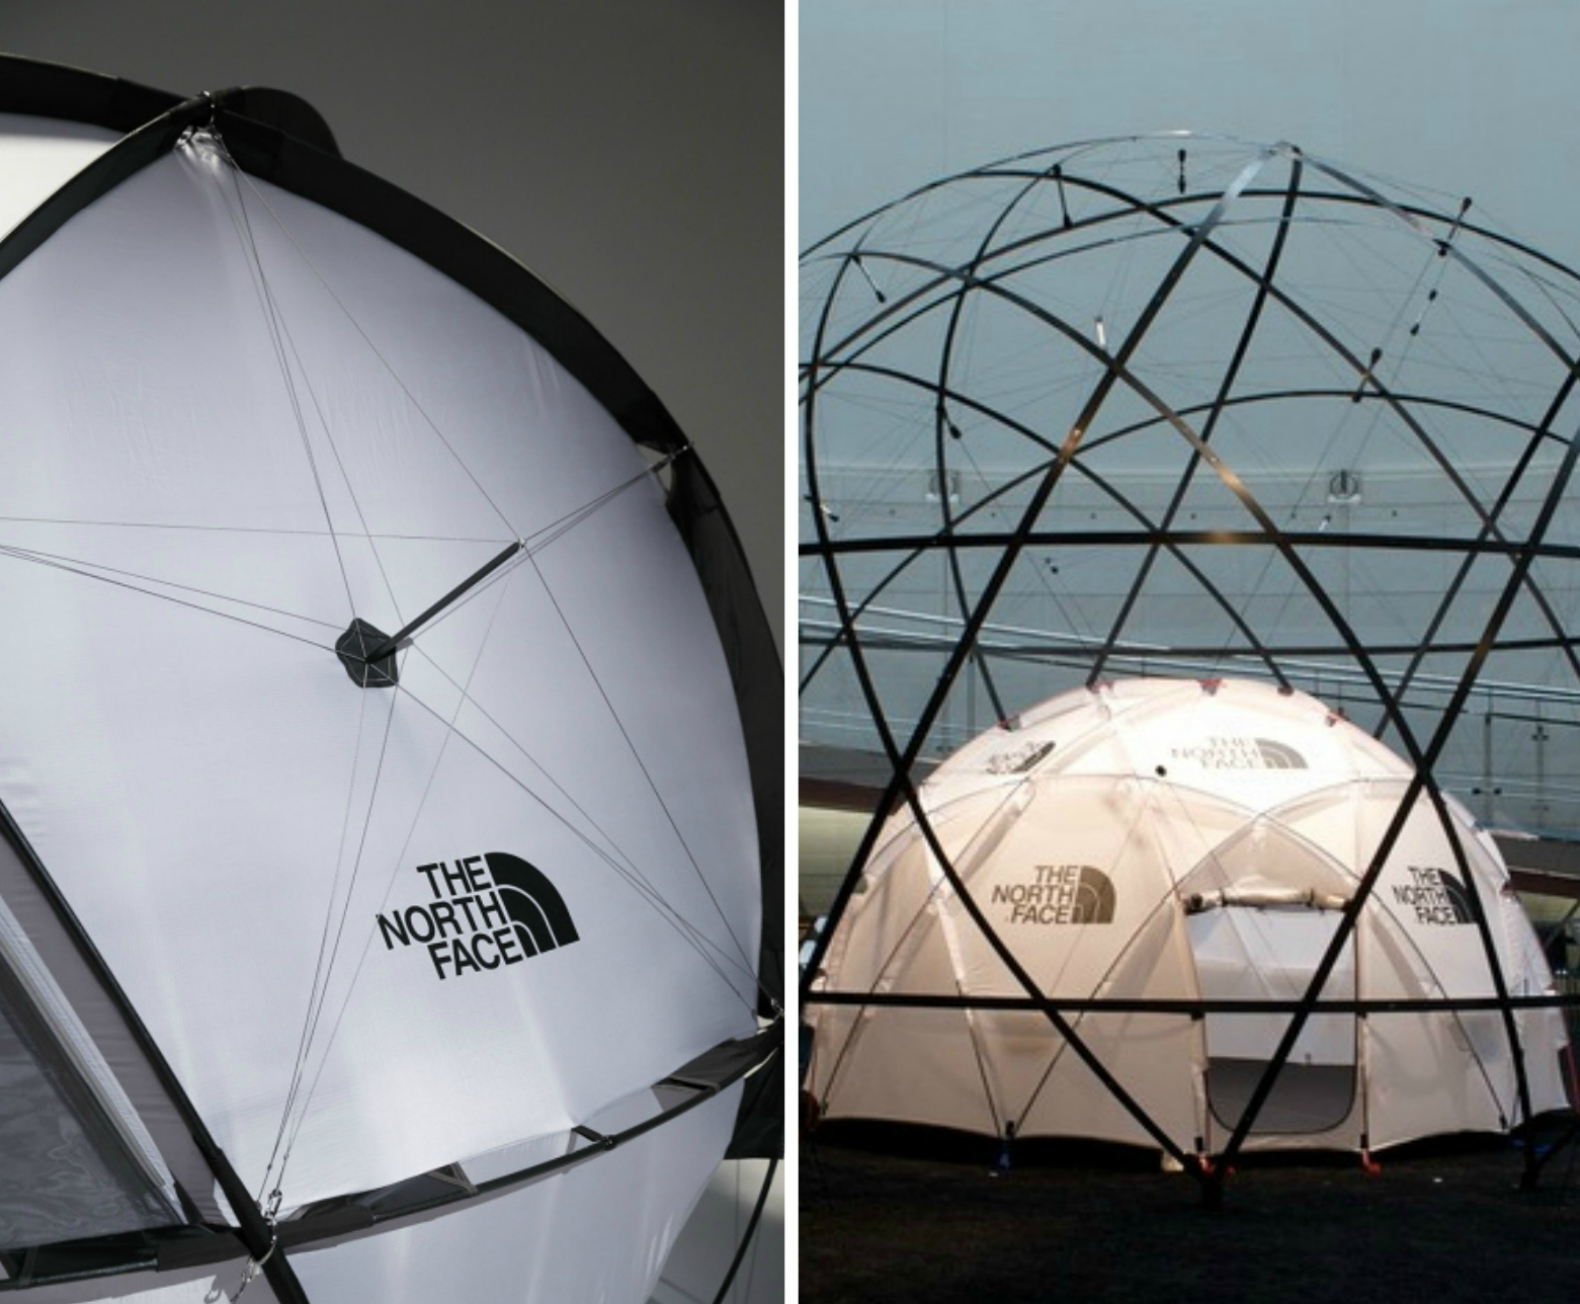 38a07dd7f The North Face unveils a geodesic tent that can withstand 60 mph winds